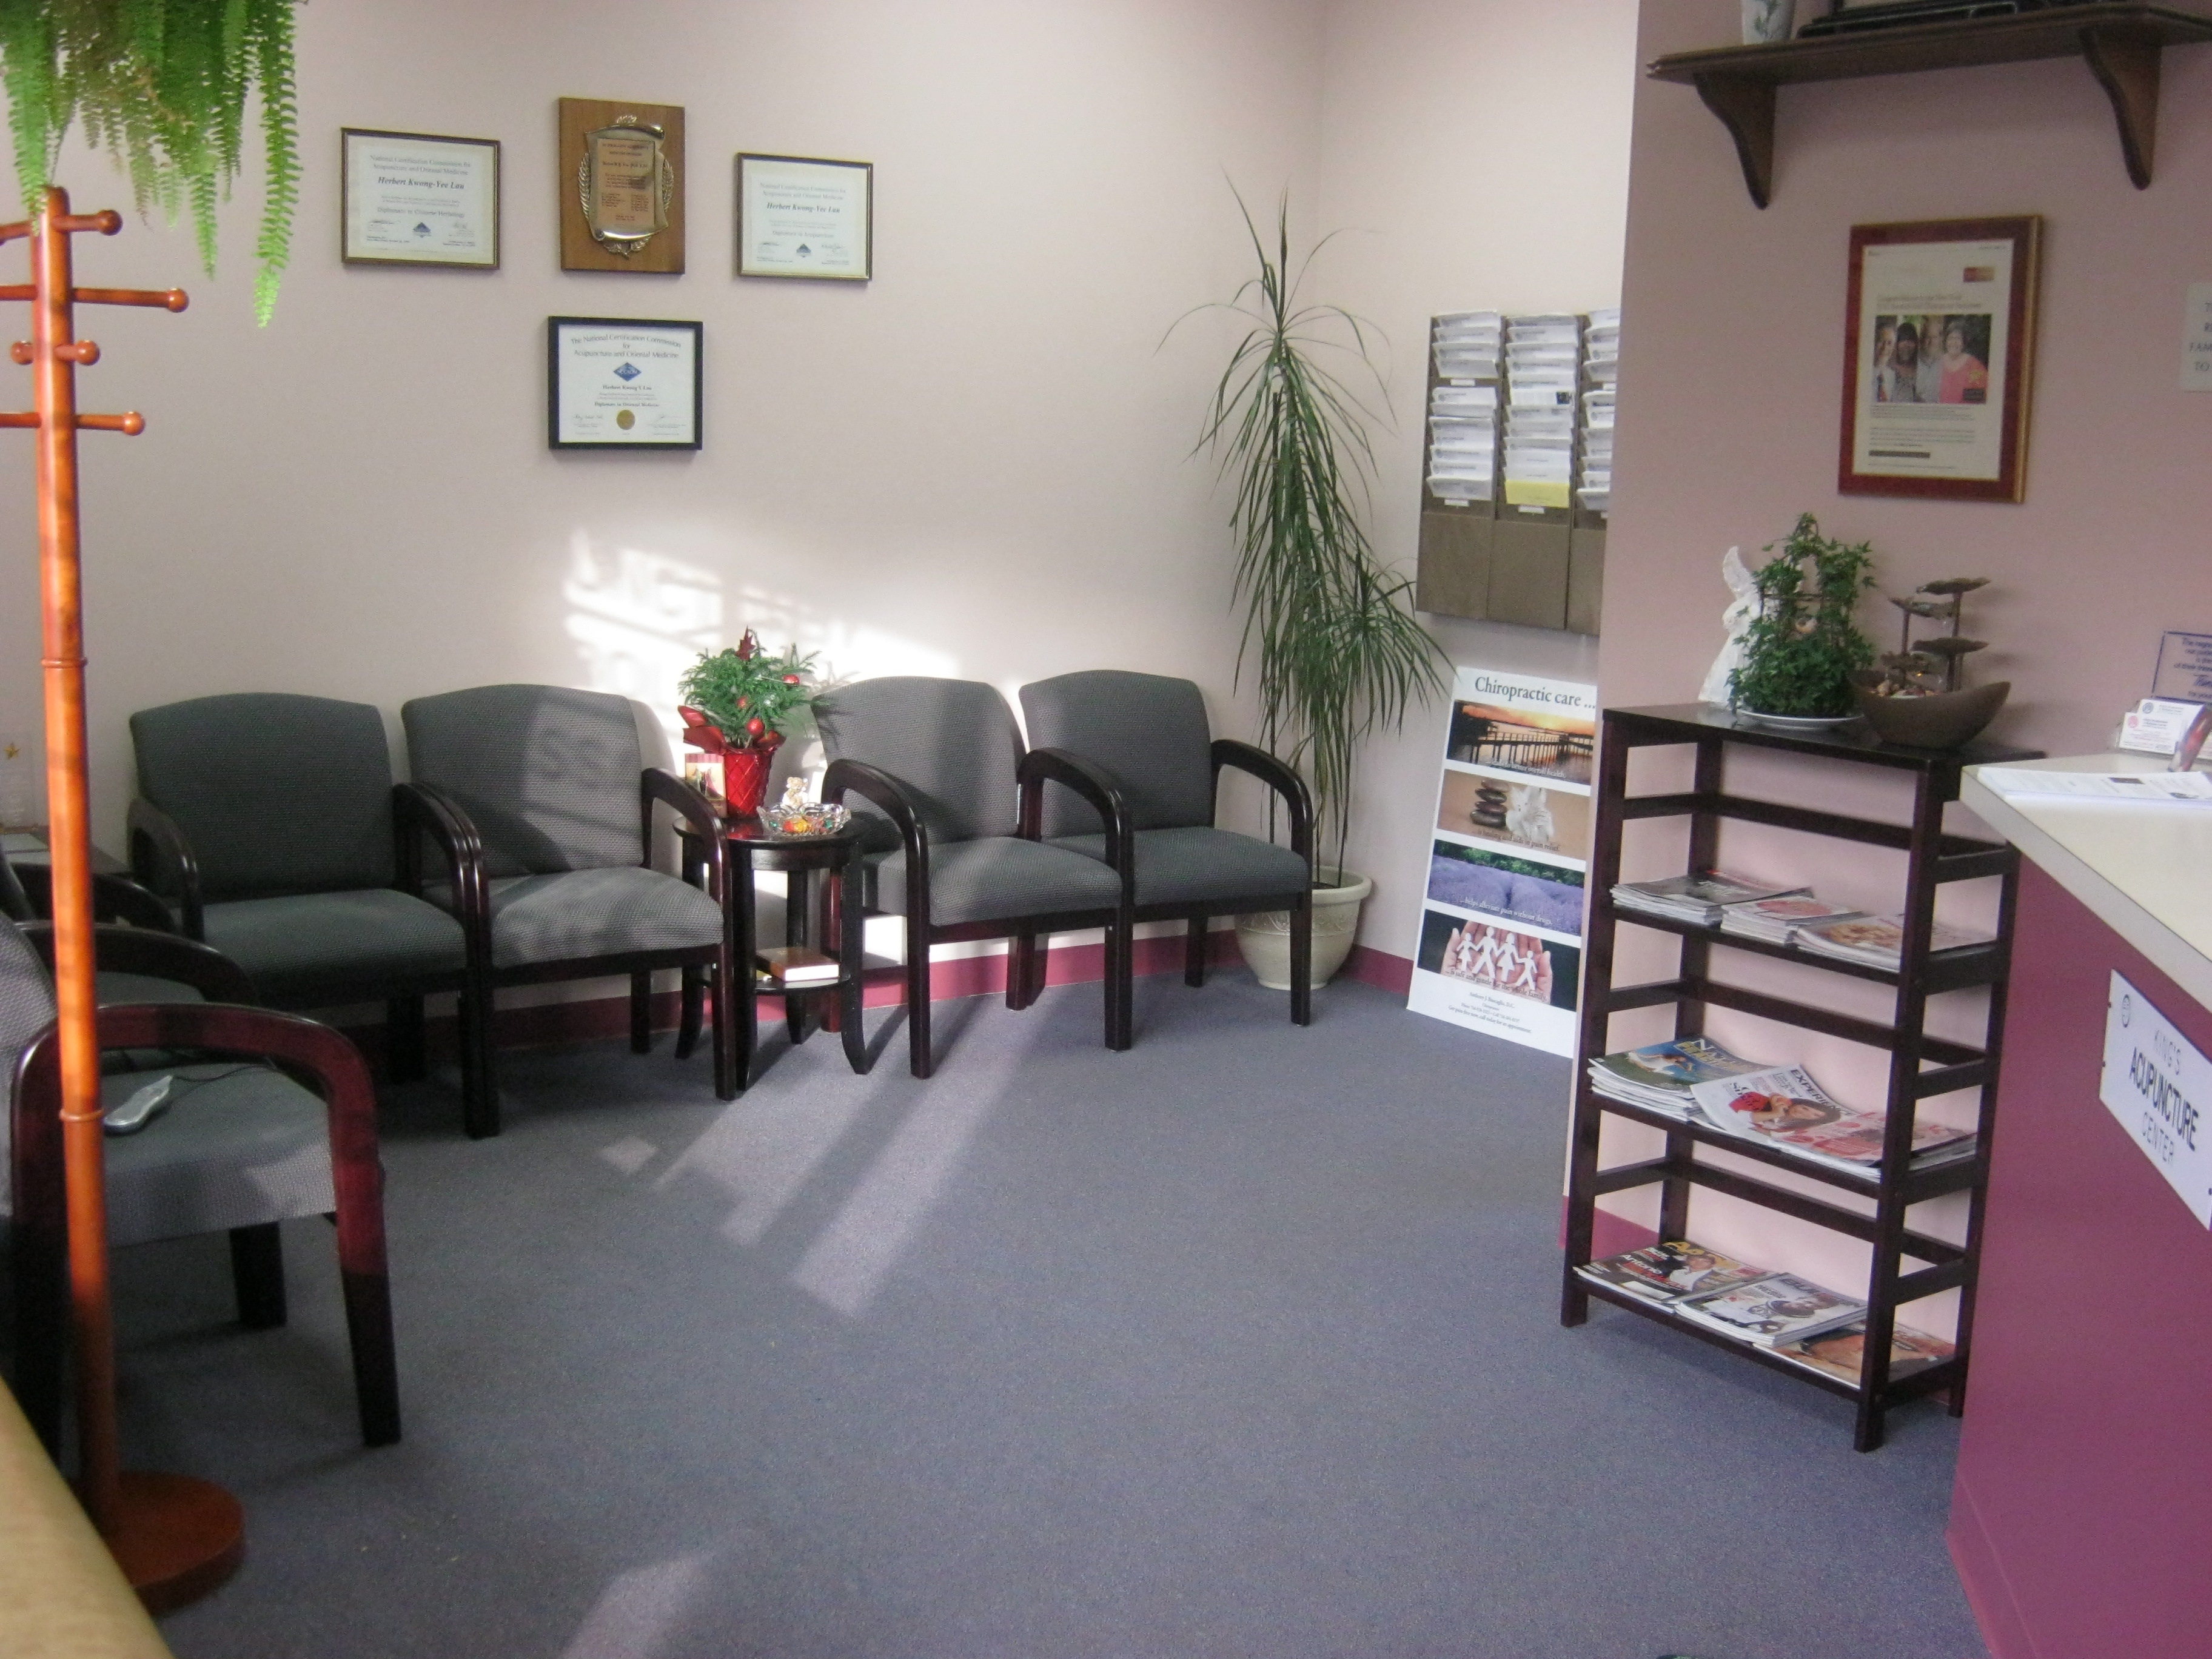 WELCOME TO KING\'S ACUPUNCTURE